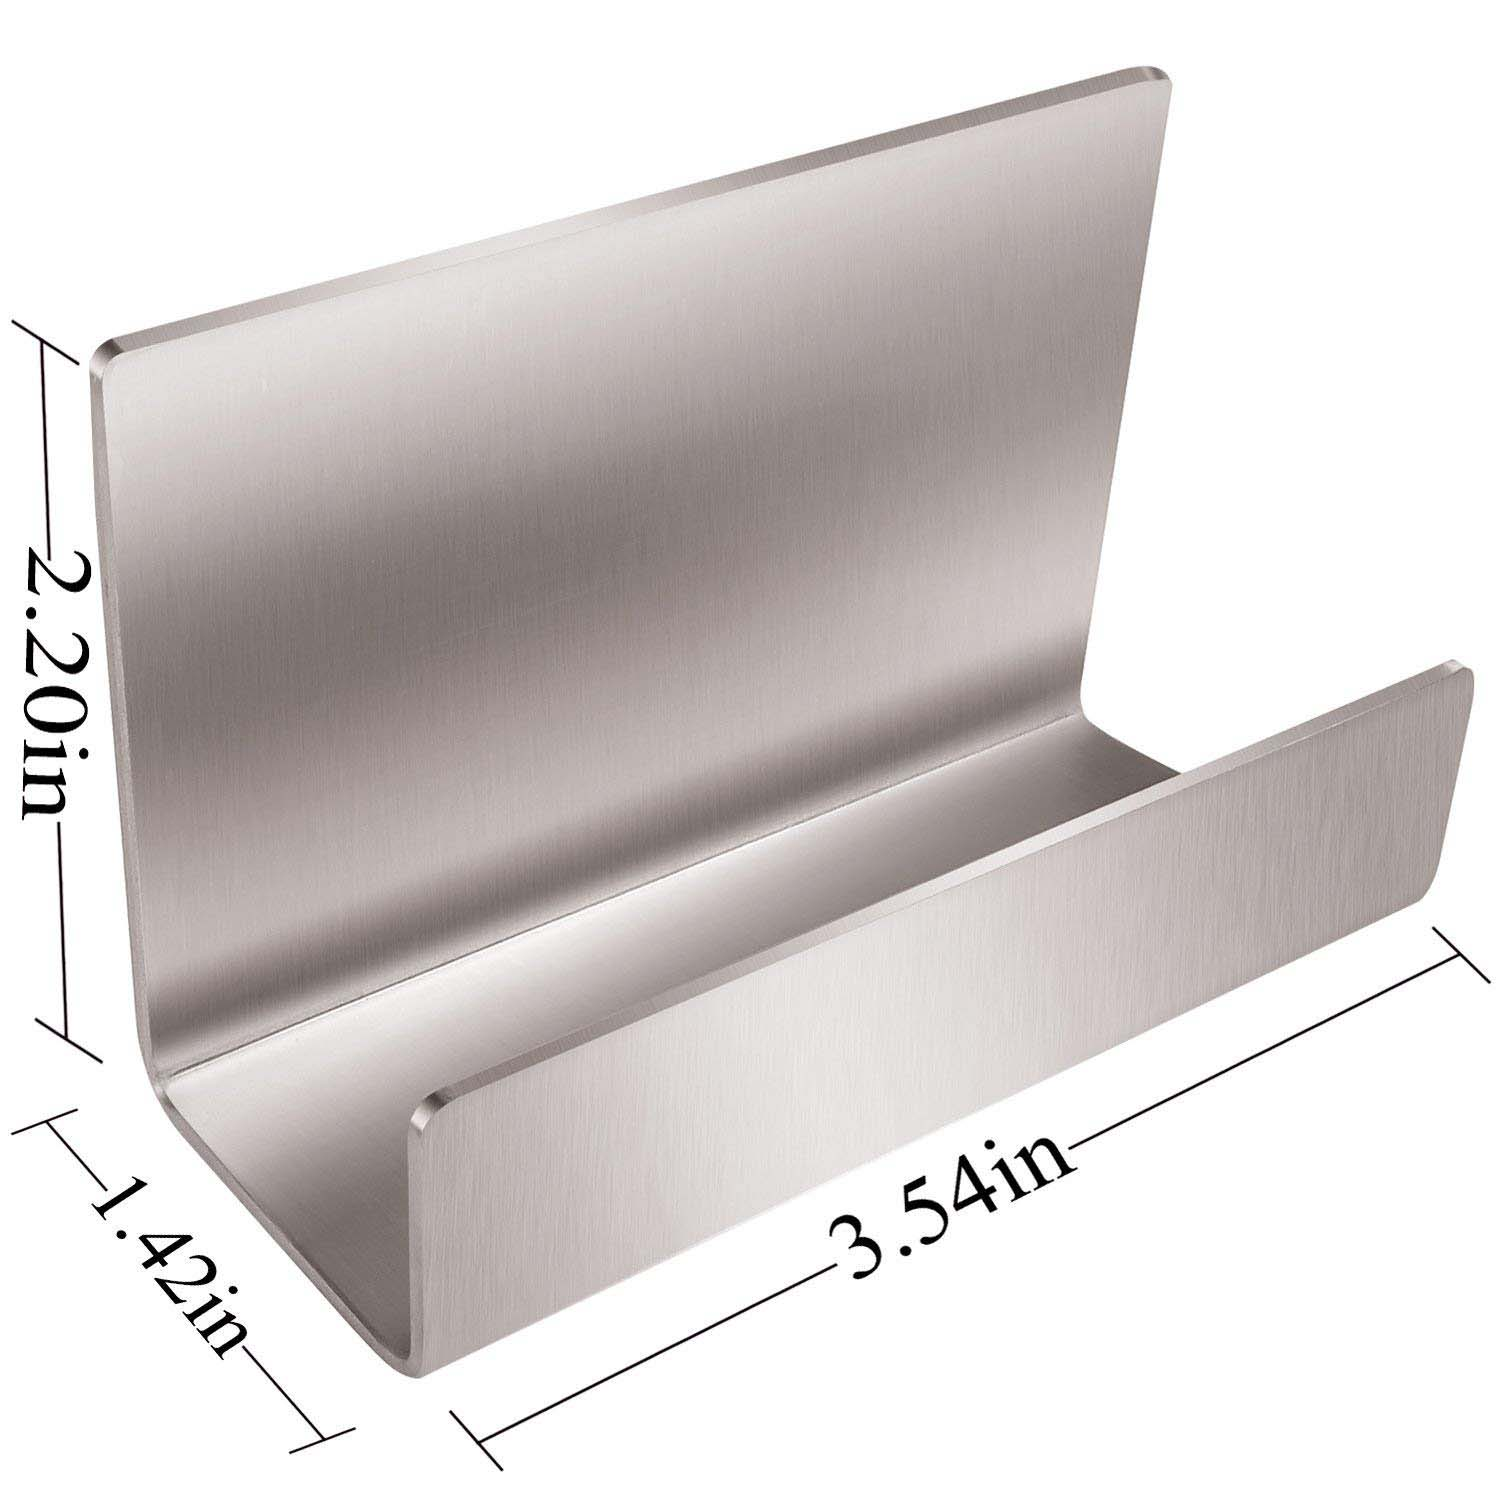 Us 8 53 30 Off Sivler Full Stainless Steel Office Business Card Holder Table Desktop Name Stand Display Silver In Note